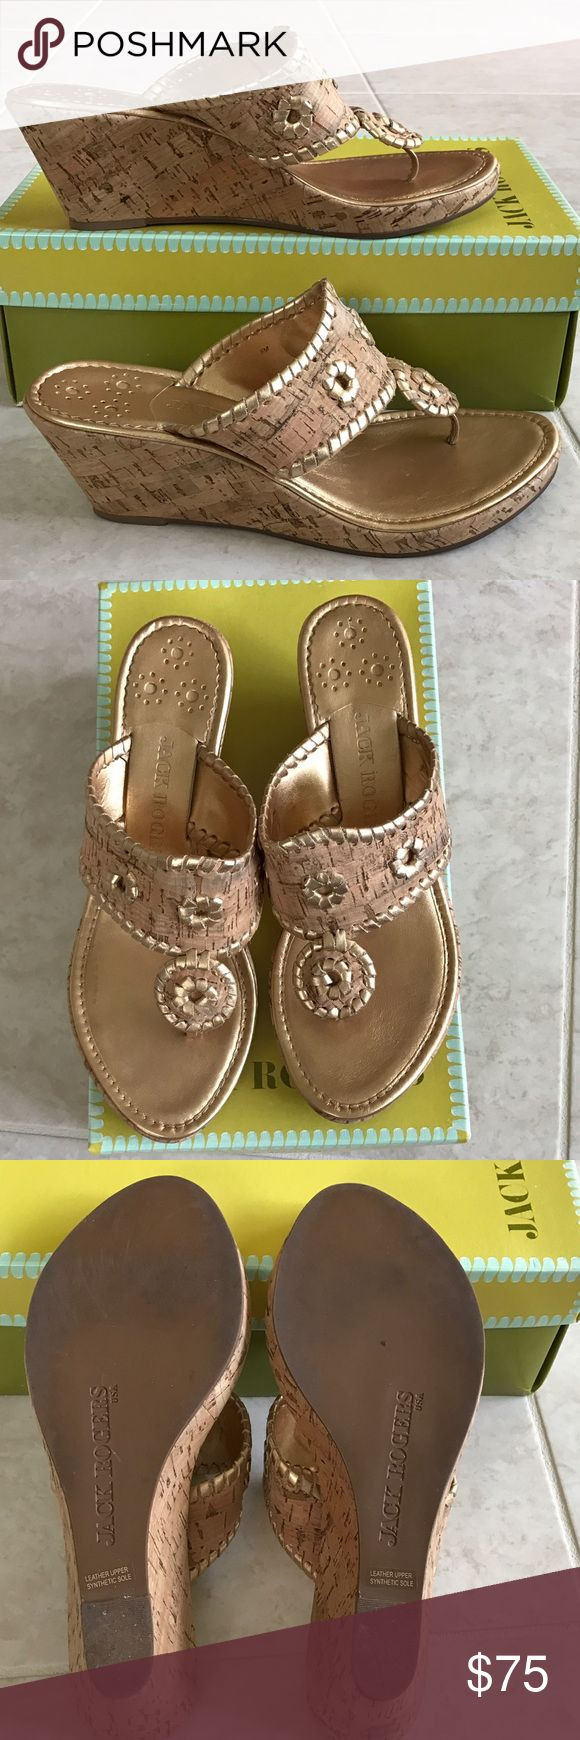 ❤Jack Rogers Marbella Mid Espadrille Cork Sandals 🌟LIKE NEW Jack Rogers Marbella Mid Espadrille Cork with Metallic gold leather wedge sandals, size 8. 🌟 Jack Rogers Shoes Wedges